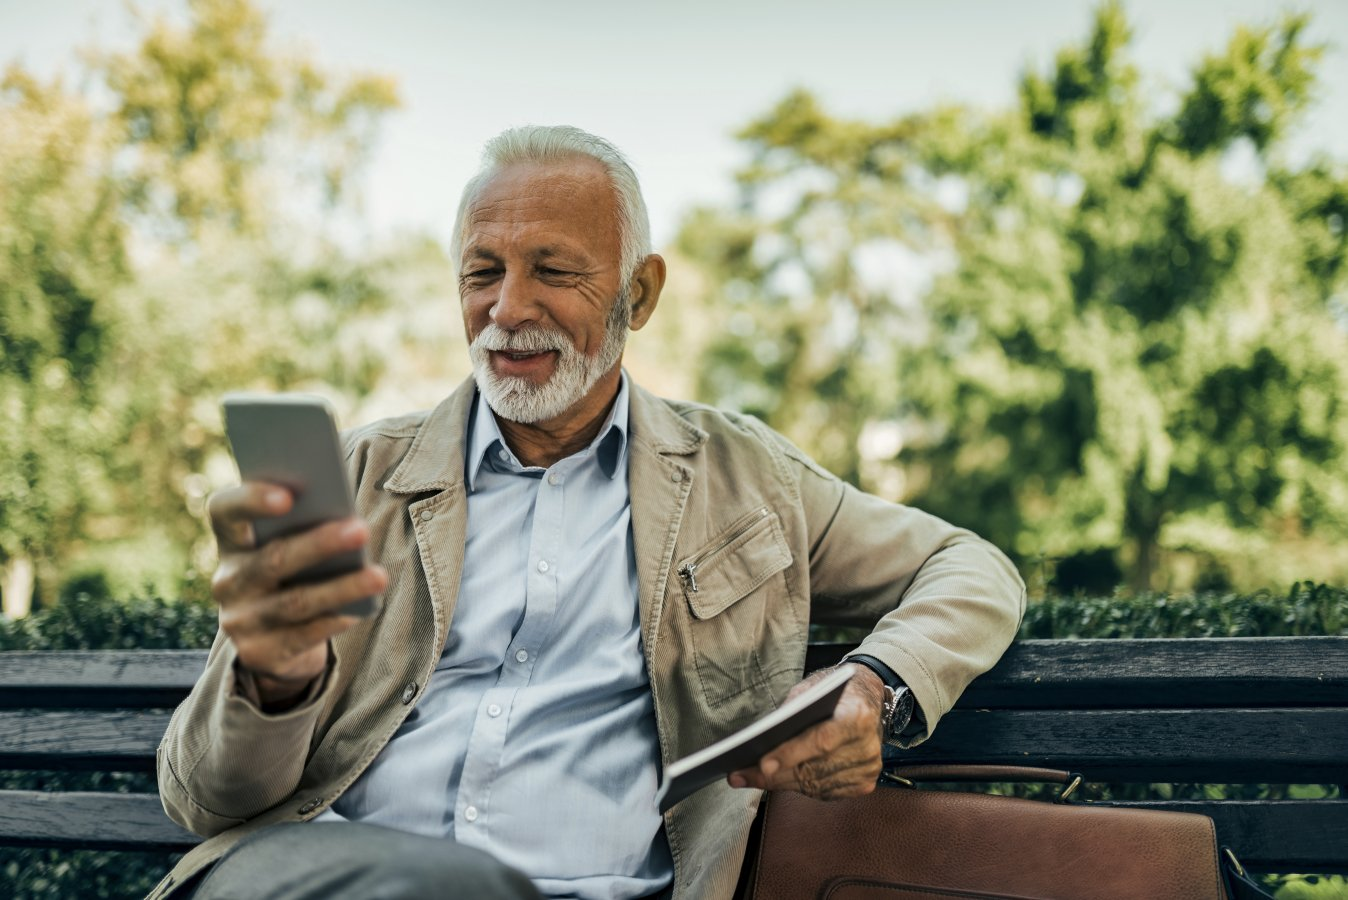 Old guy looking at his phone, sitting on a bench